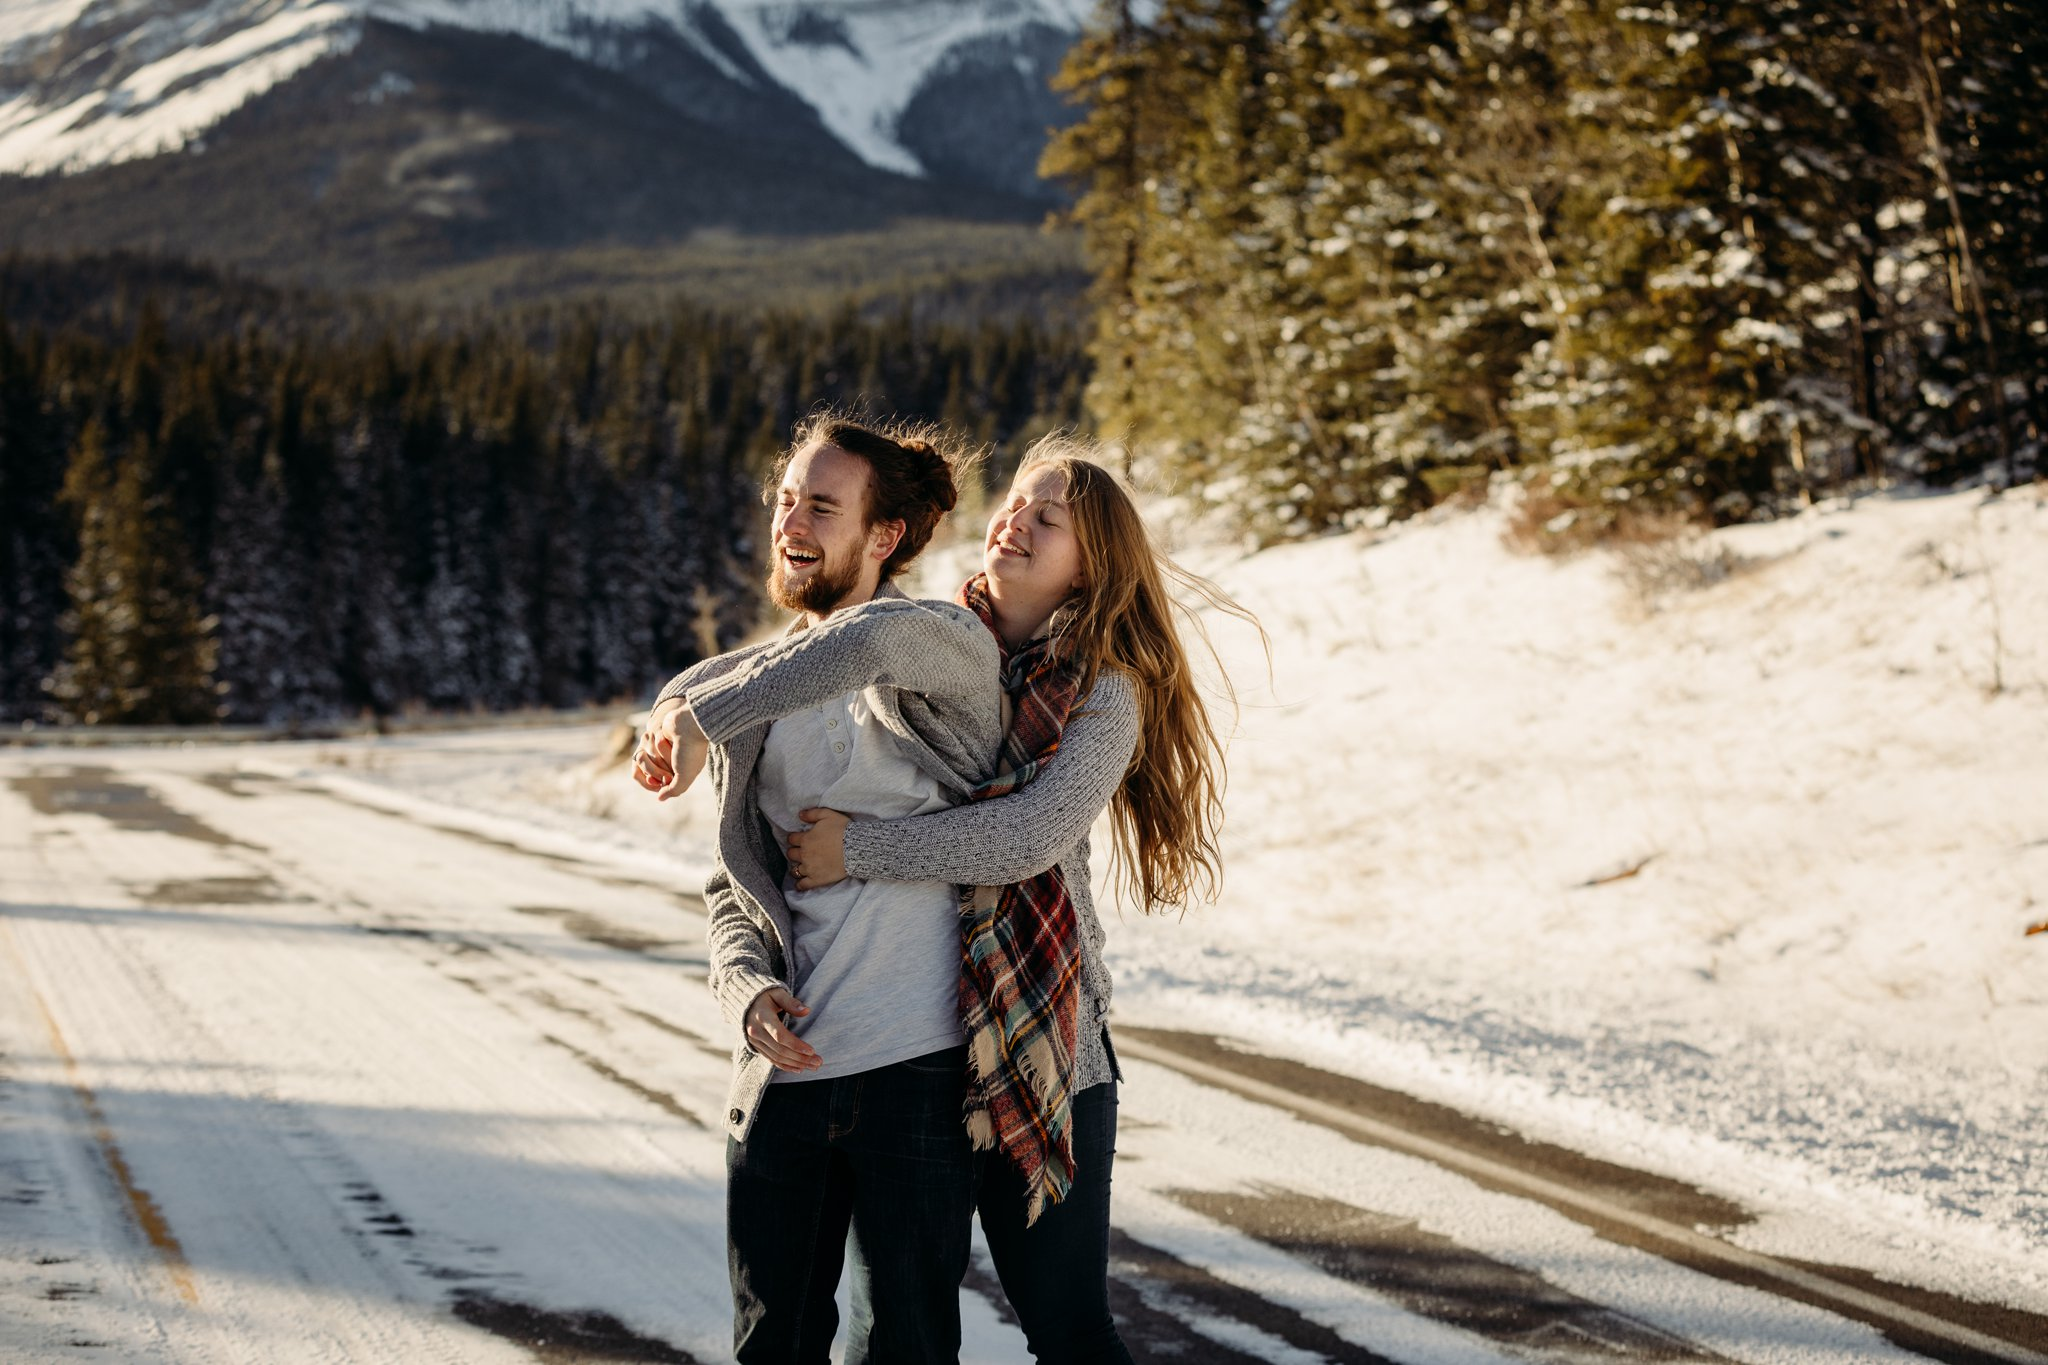 AshleyDaphnePhotography Calgary Photographer Wedding Engagement Sheep River Provincial Park Photos Kananskis Rocky Mountain Canmore Photographer_0021.jpg